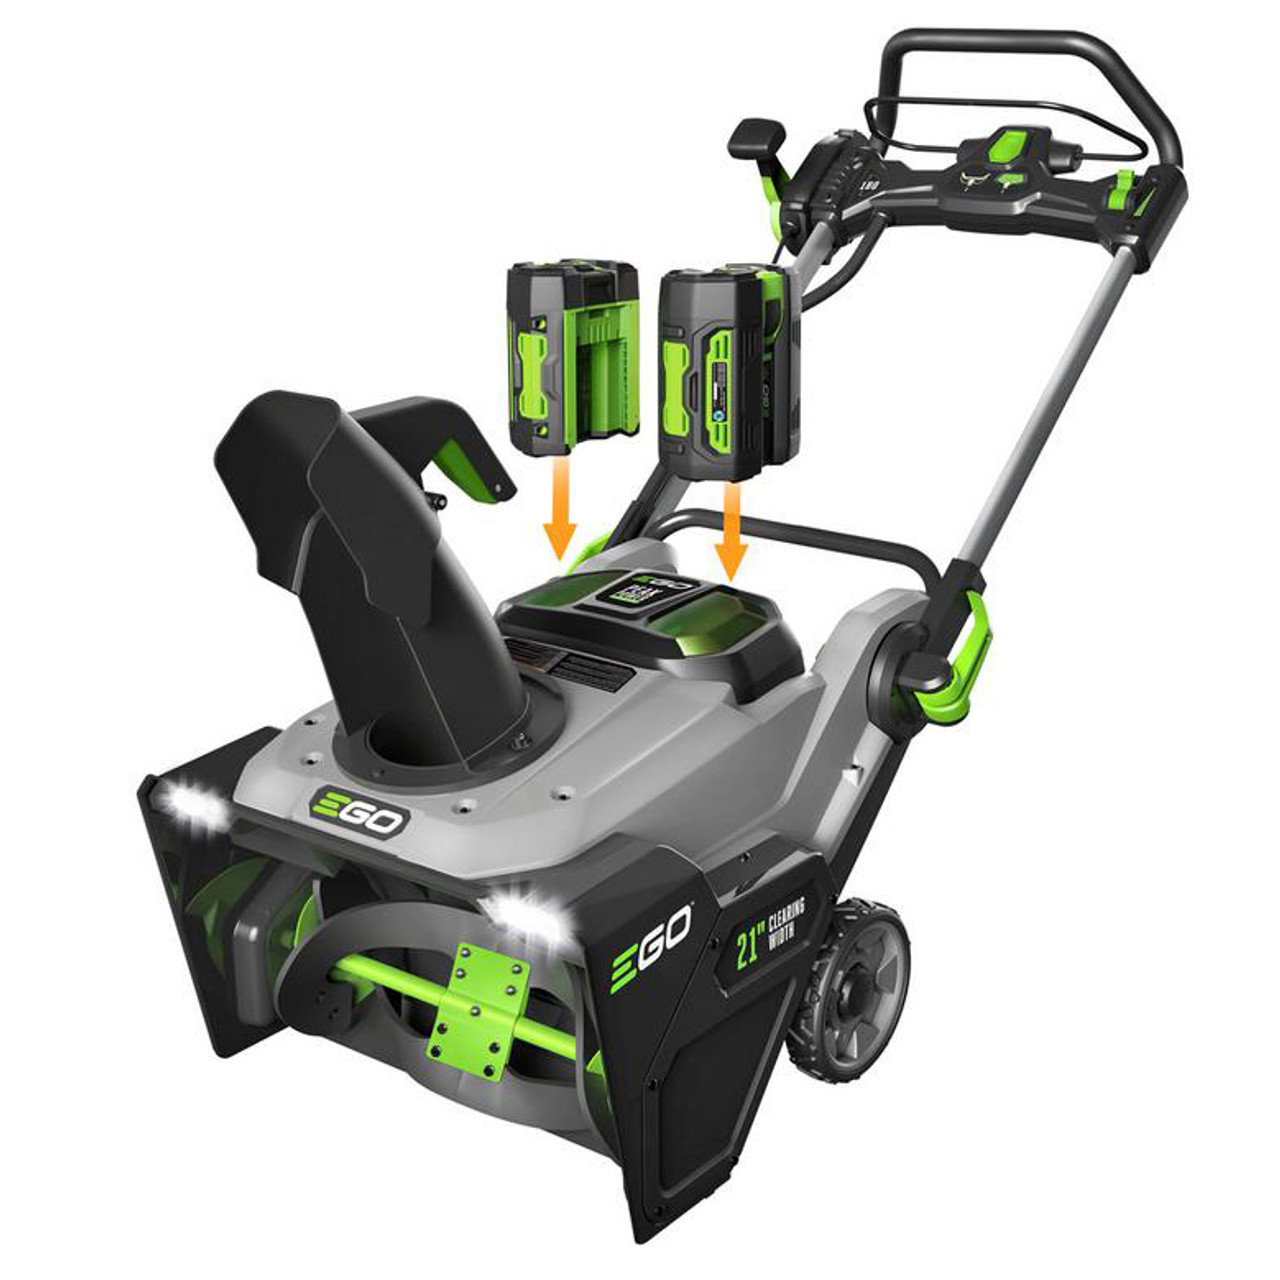 """EGO SNT2103 21"""" Electric Snowblower Kit w/ (2) 7.5Ah Batteries & 550W Rapid Charger Image 2"""